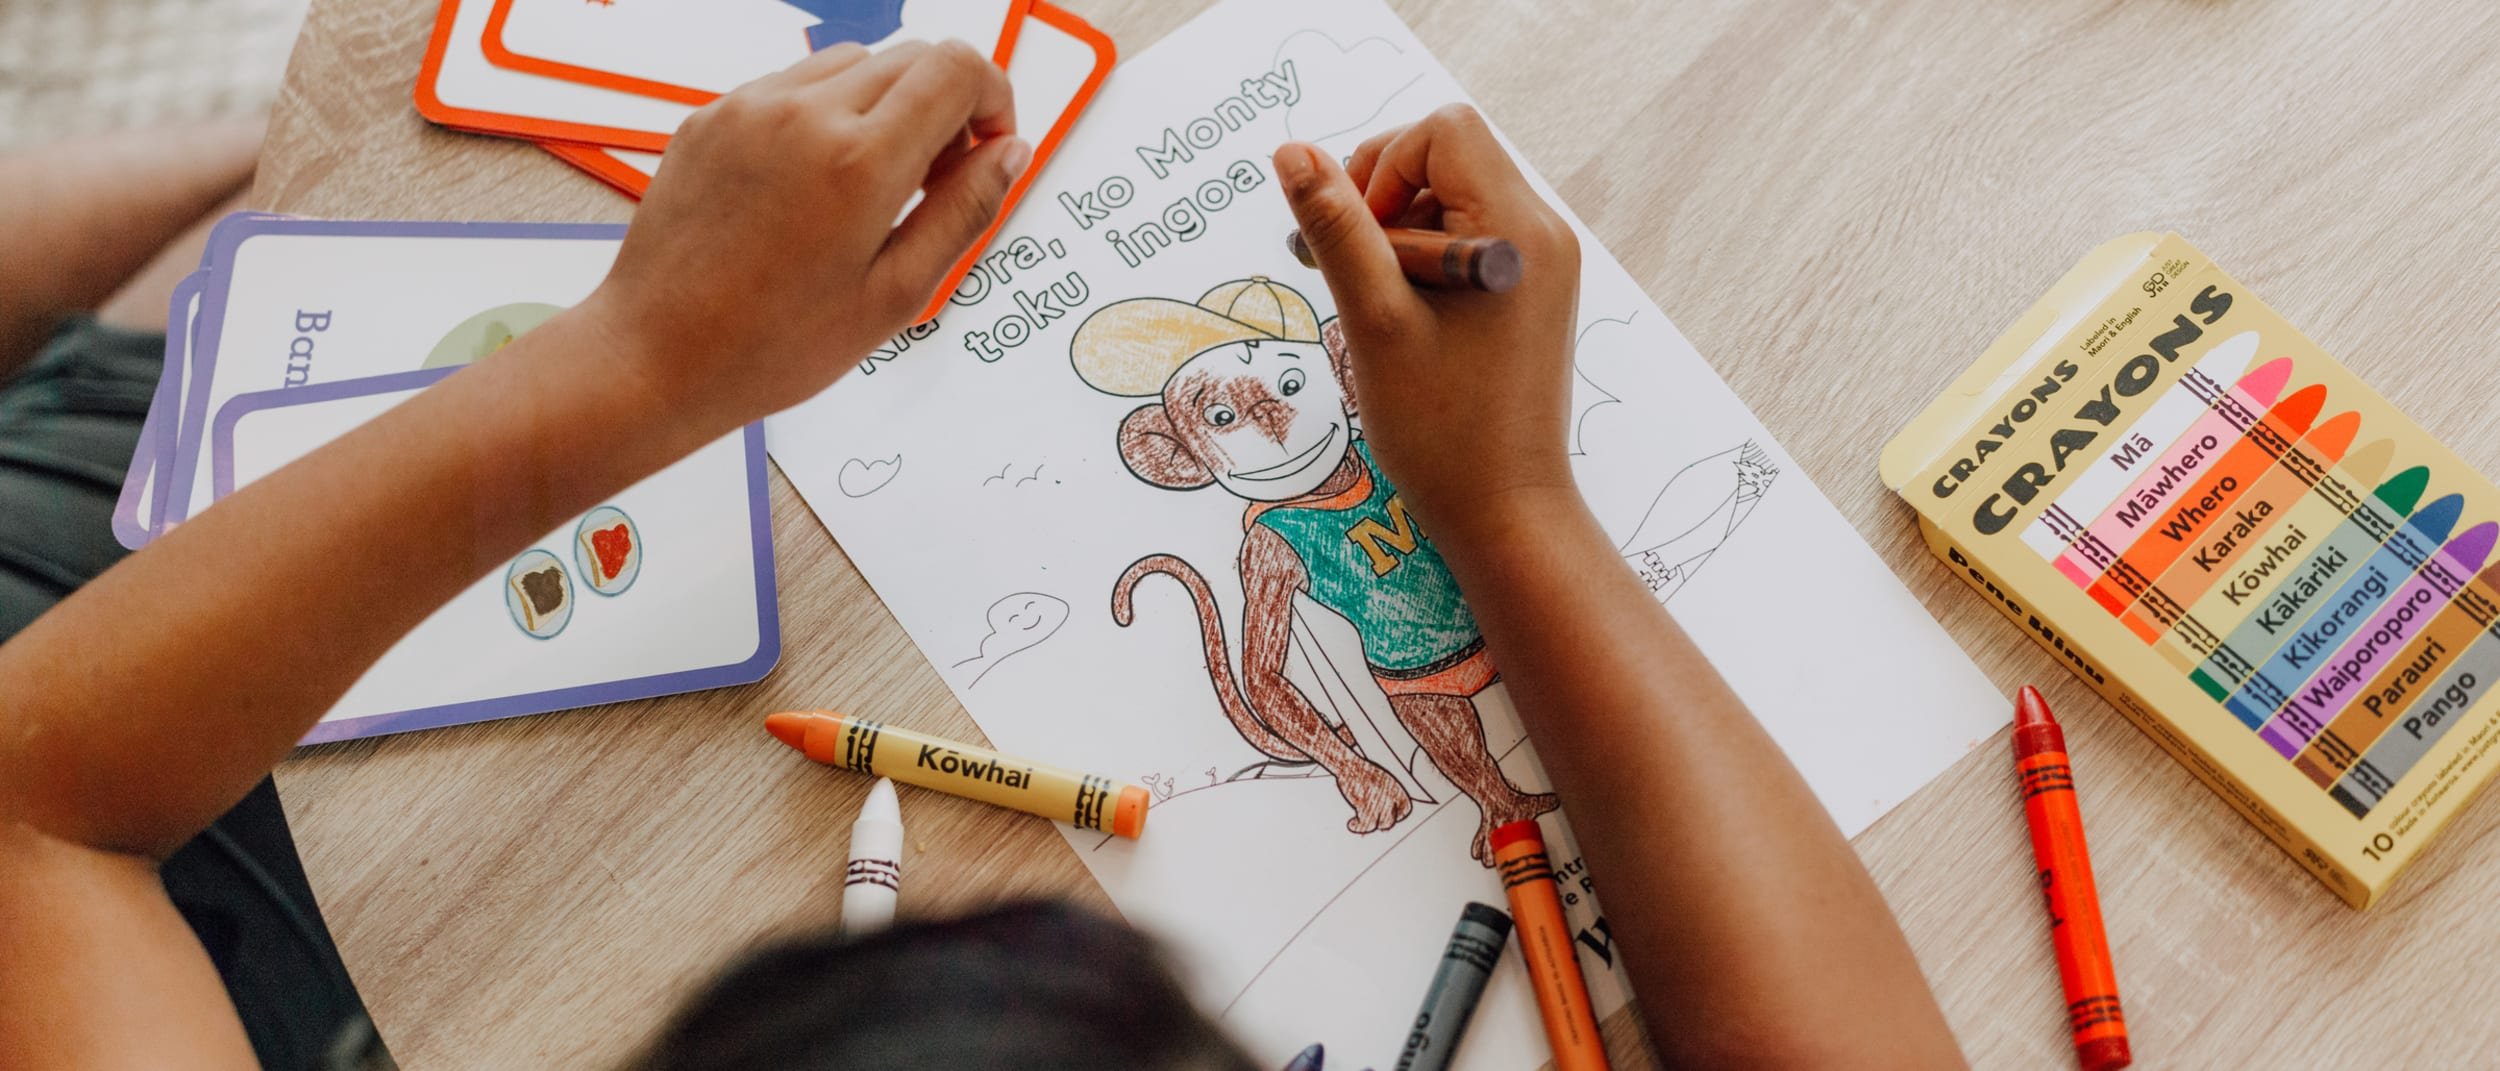 Learn some basic Māori words with Monty the Monkey